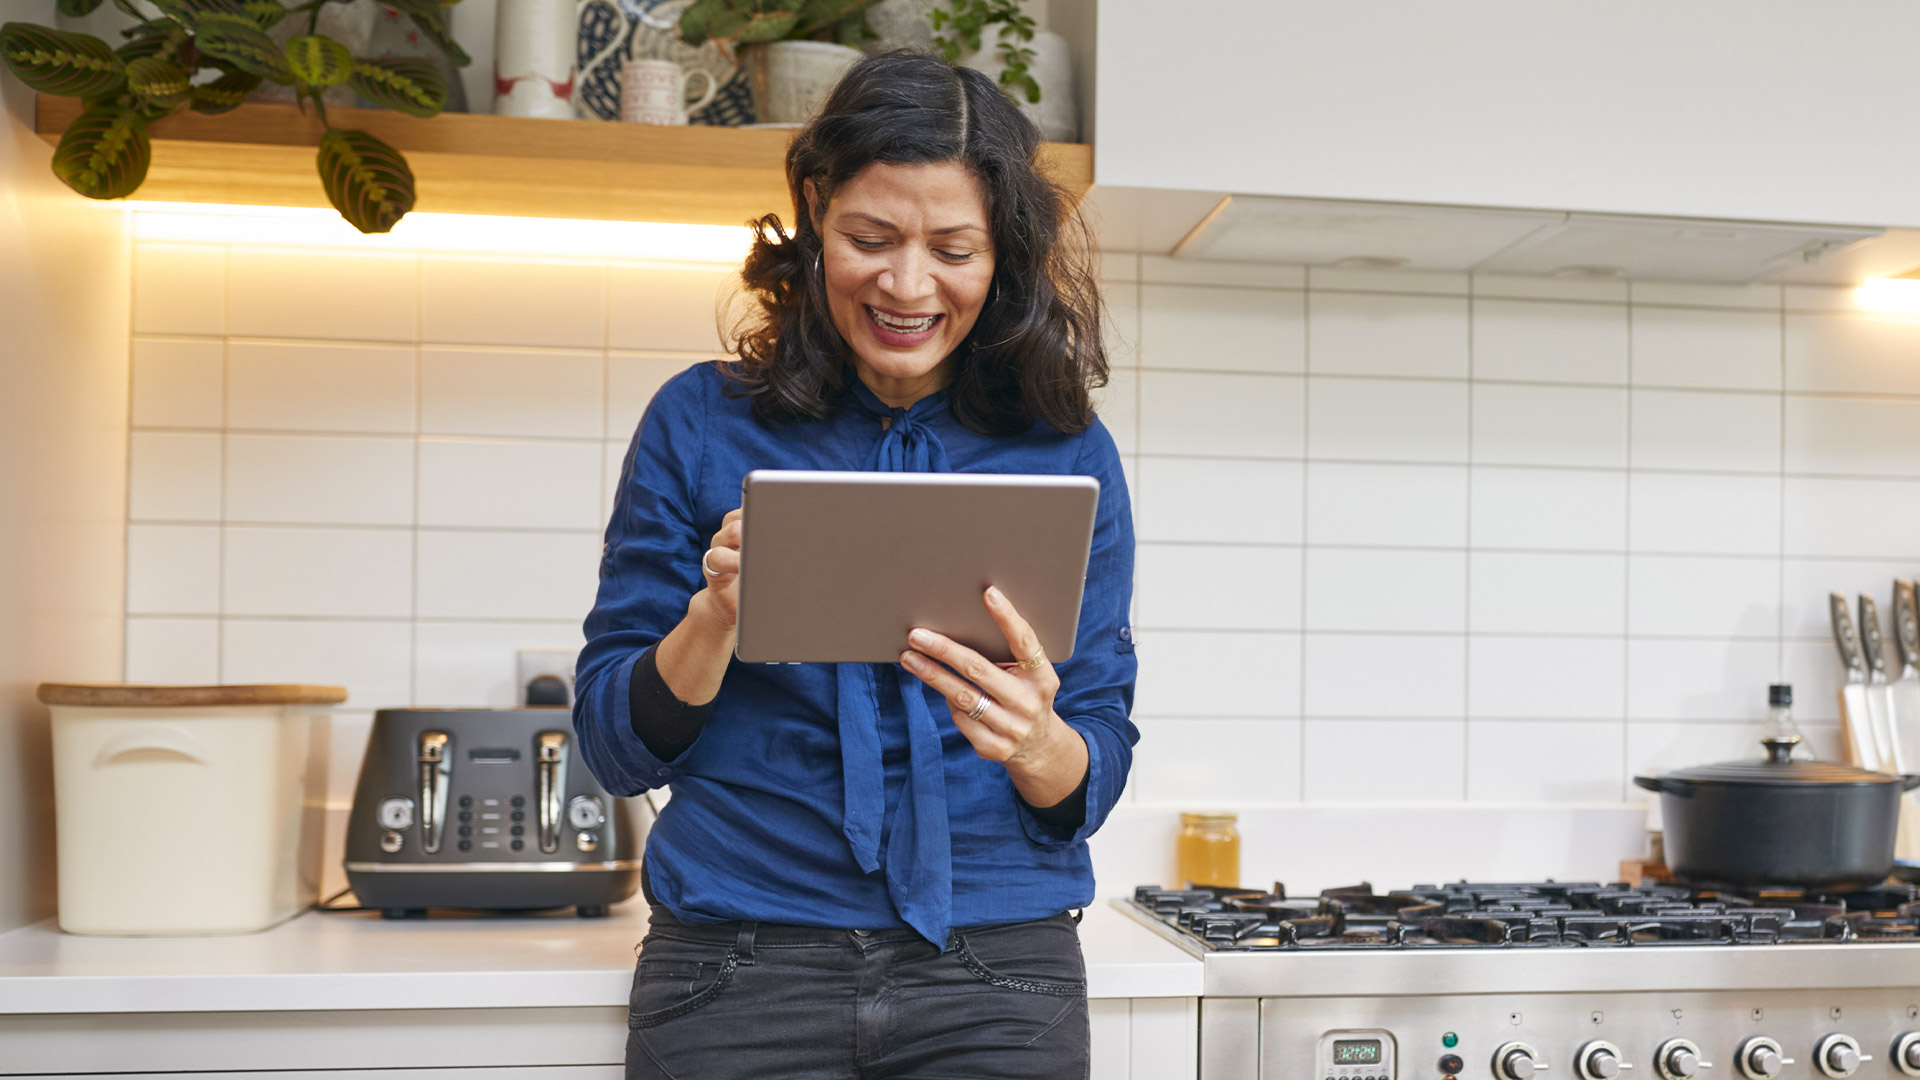 A woman with dark hair wearing a blue blouse stands leaned against her kitchen counter holding a tablet, smiling at the screen.